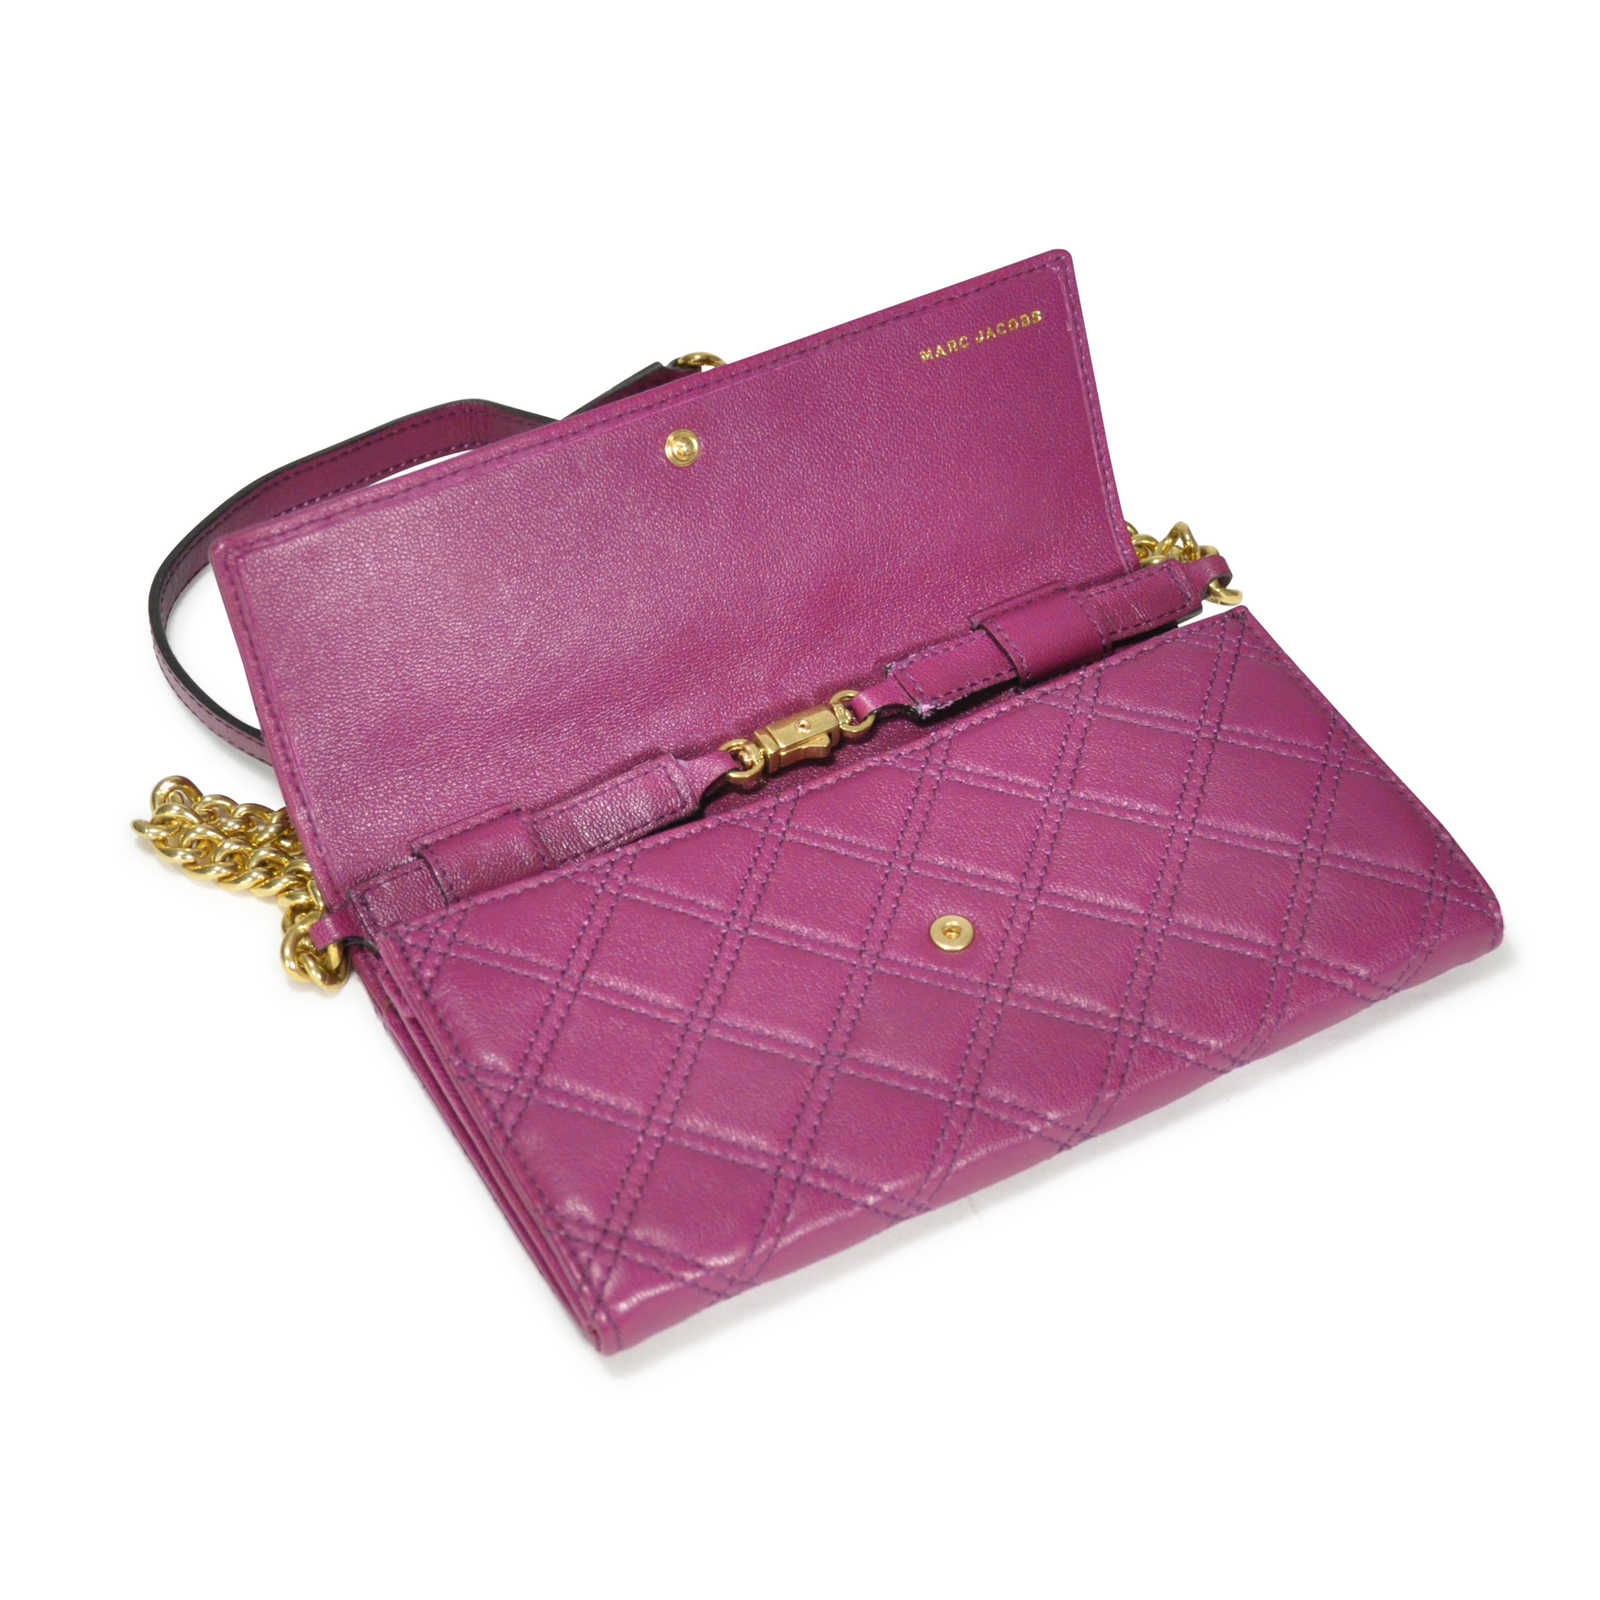 2b9baee5c18 ... Authentic Second Hand Marc Jacobs 'The Single' Quilted Crossbody Bag  (PSS-225 ...